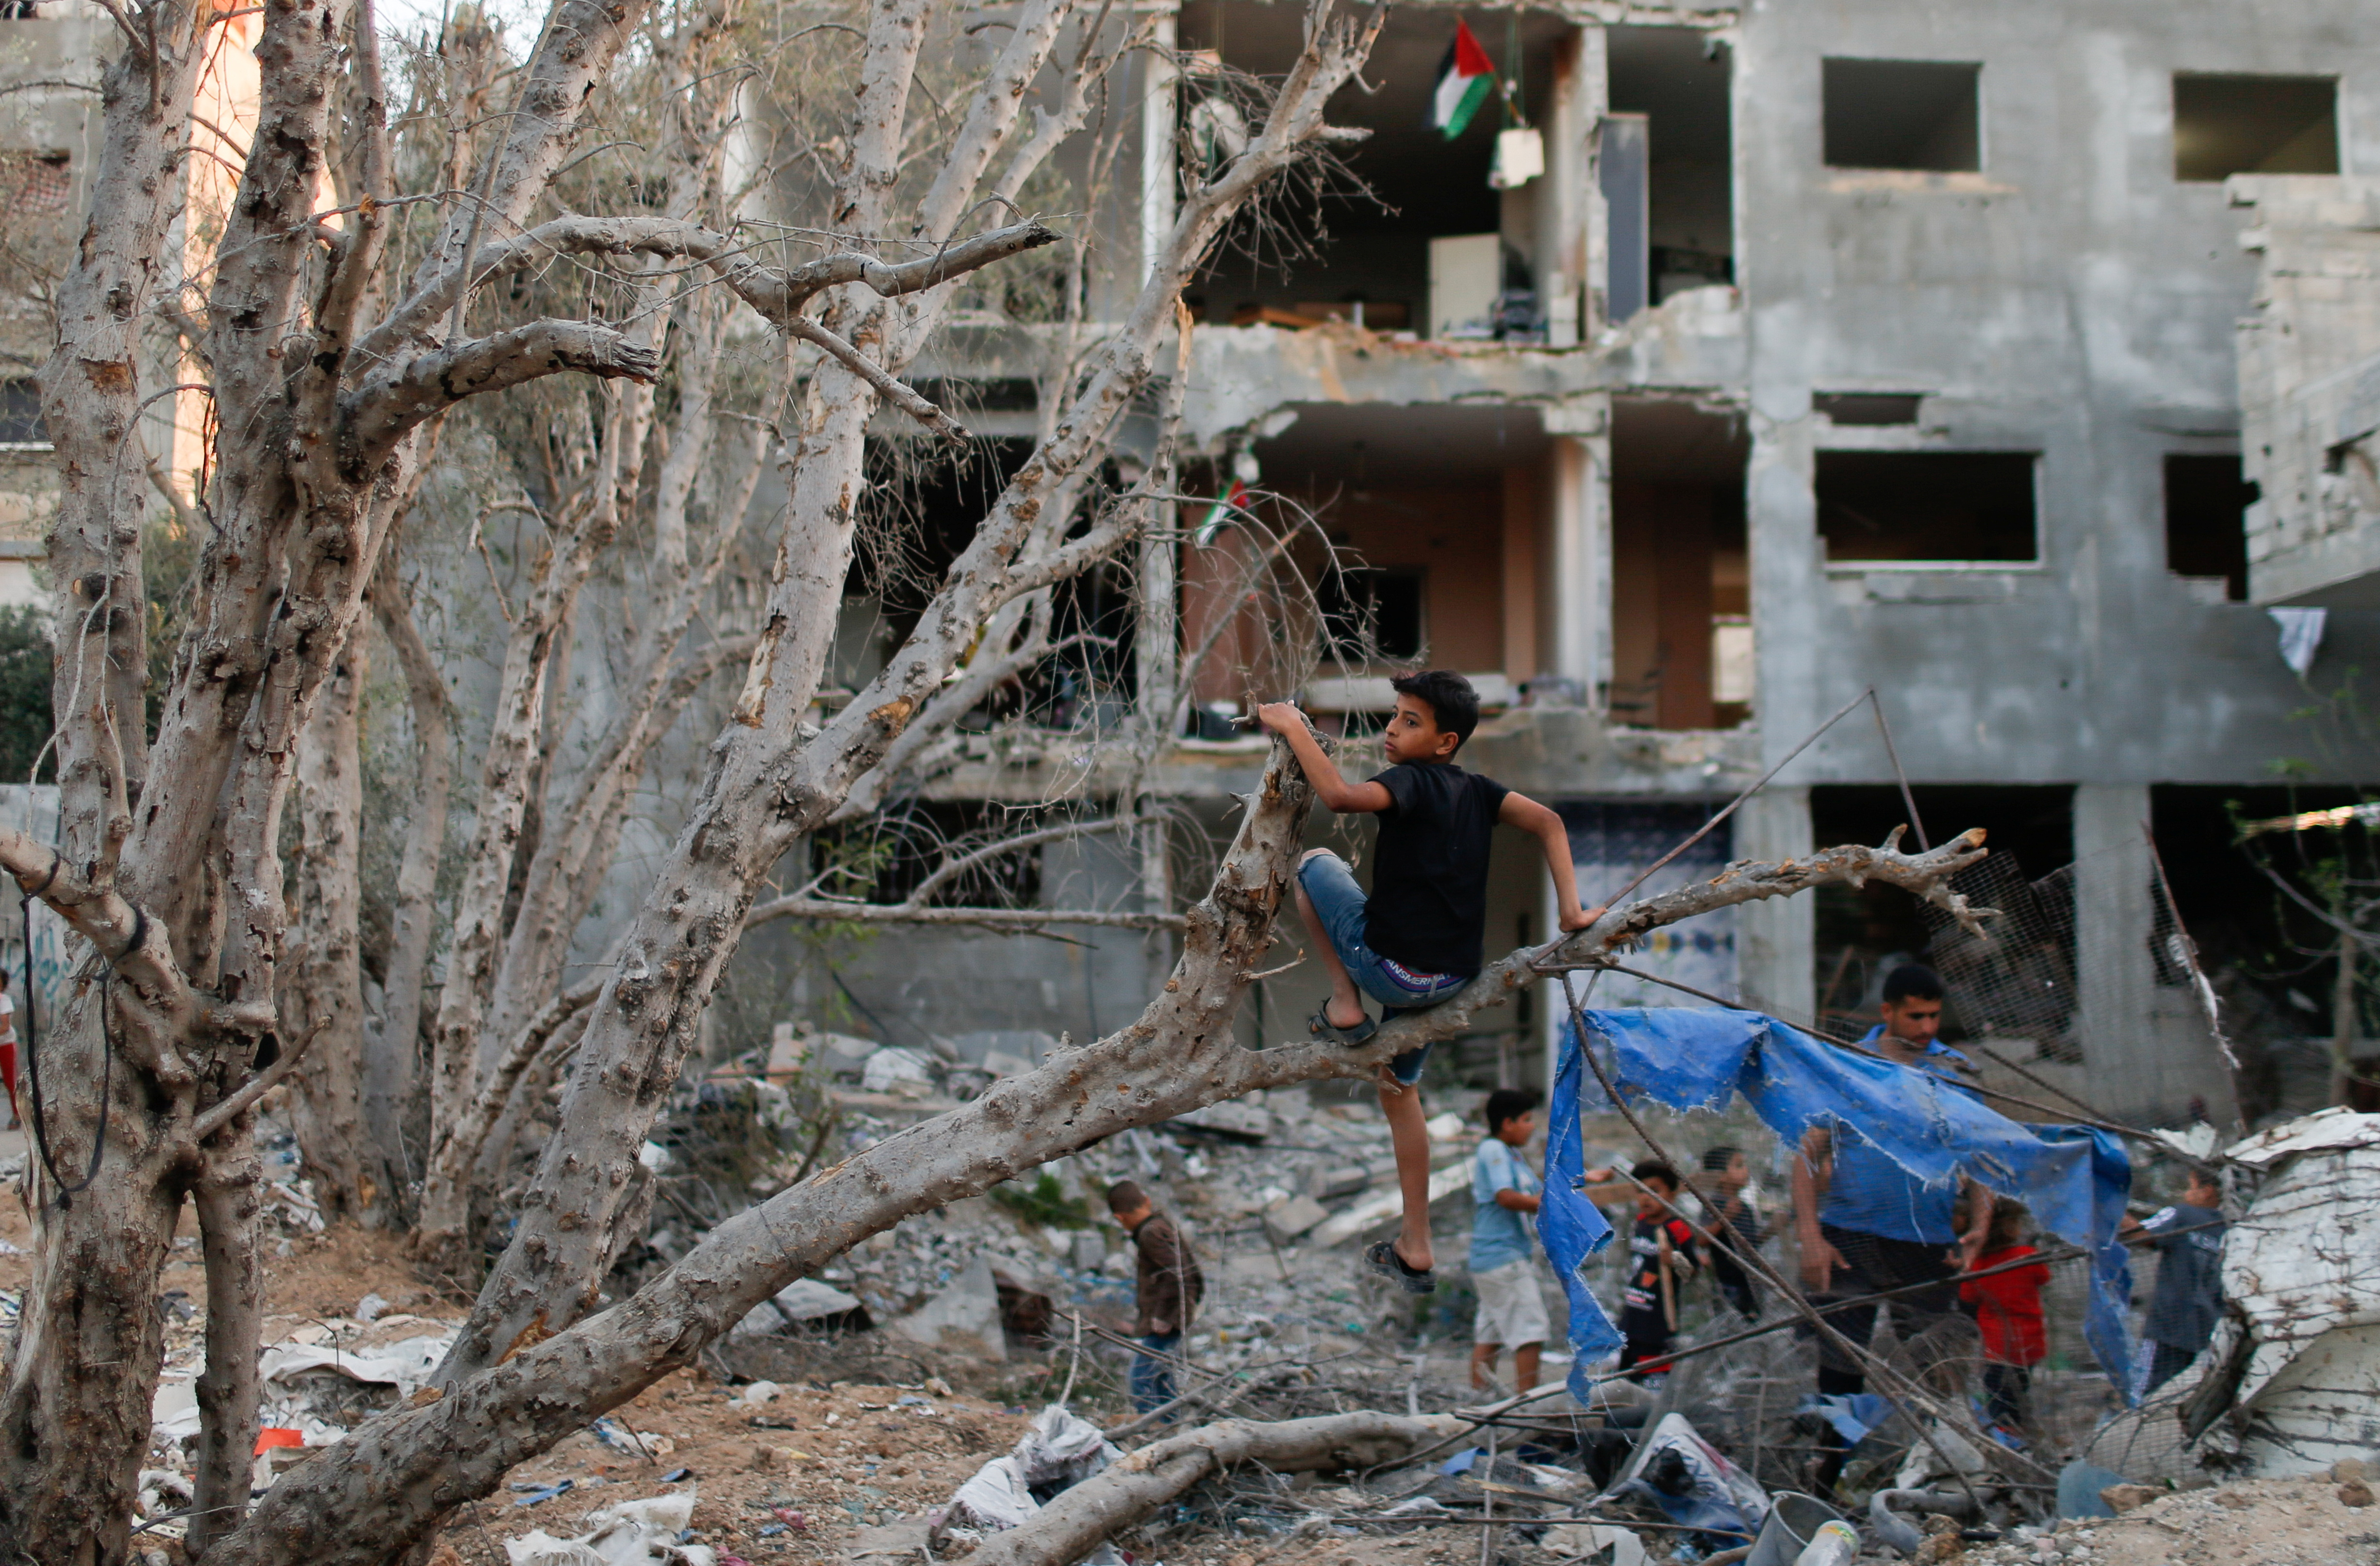 A Palestinian boy sits in a tree near a building destroyed during Israeli-Palestinian fighting, in the northern Gaza Strip June 1, 2021. REUTERS/Mohammed Salem